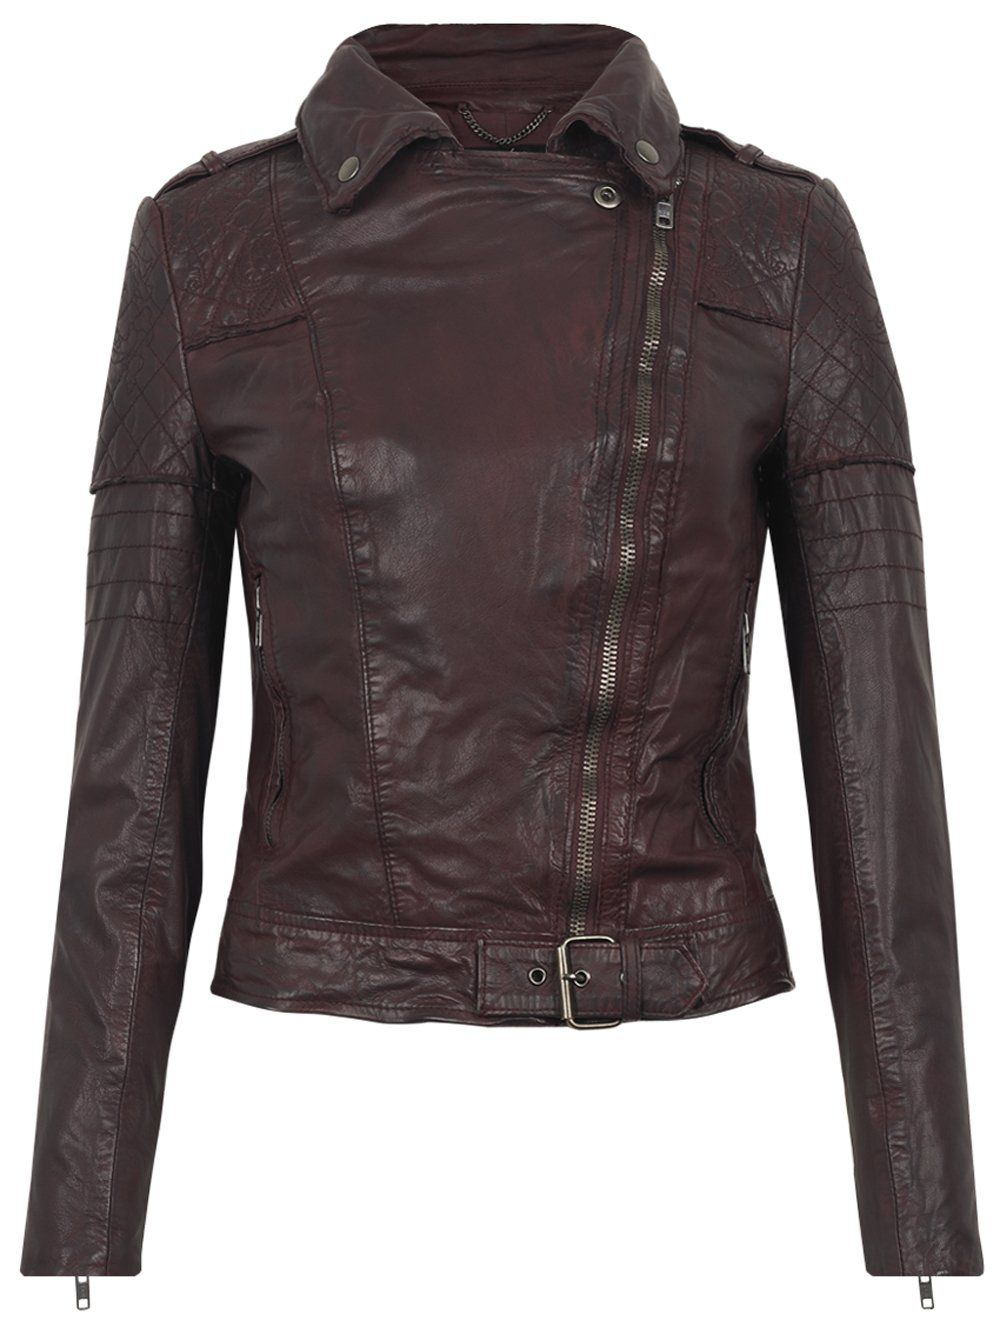 Minsk Leather Quilted Biker in Berry Косуха, Куртка